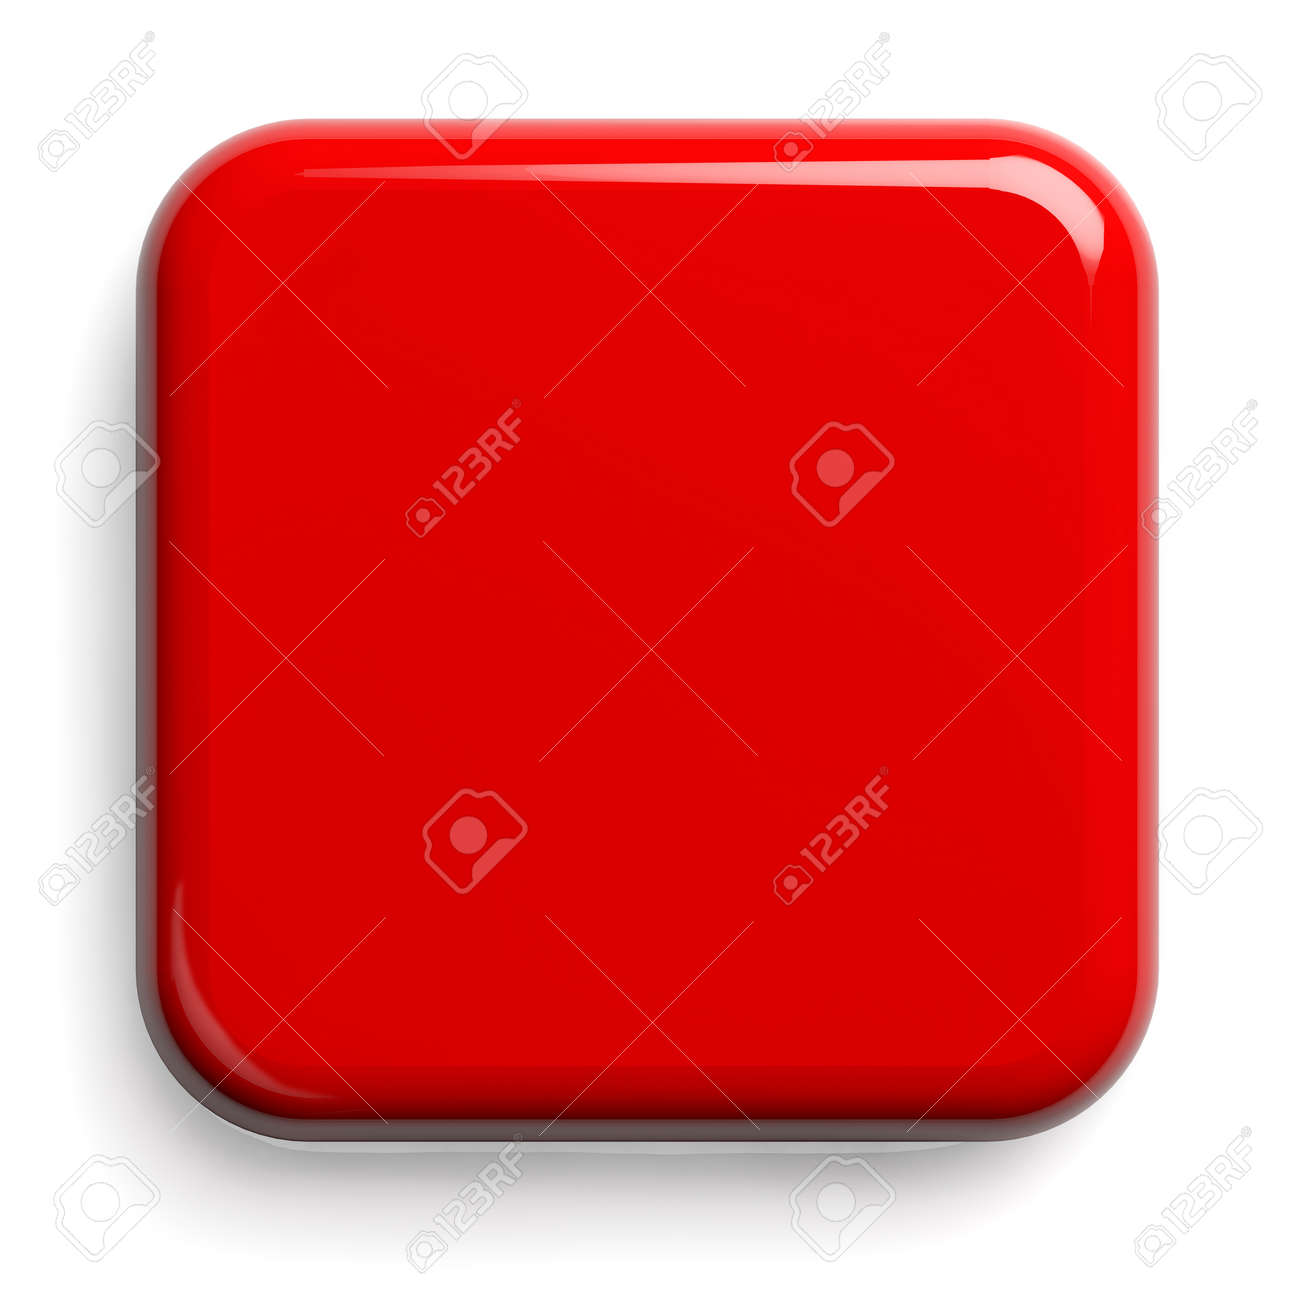 Red Button. Square Shiny Plate Isolated on White. Clipping path included. 3D illustration. - 147354081